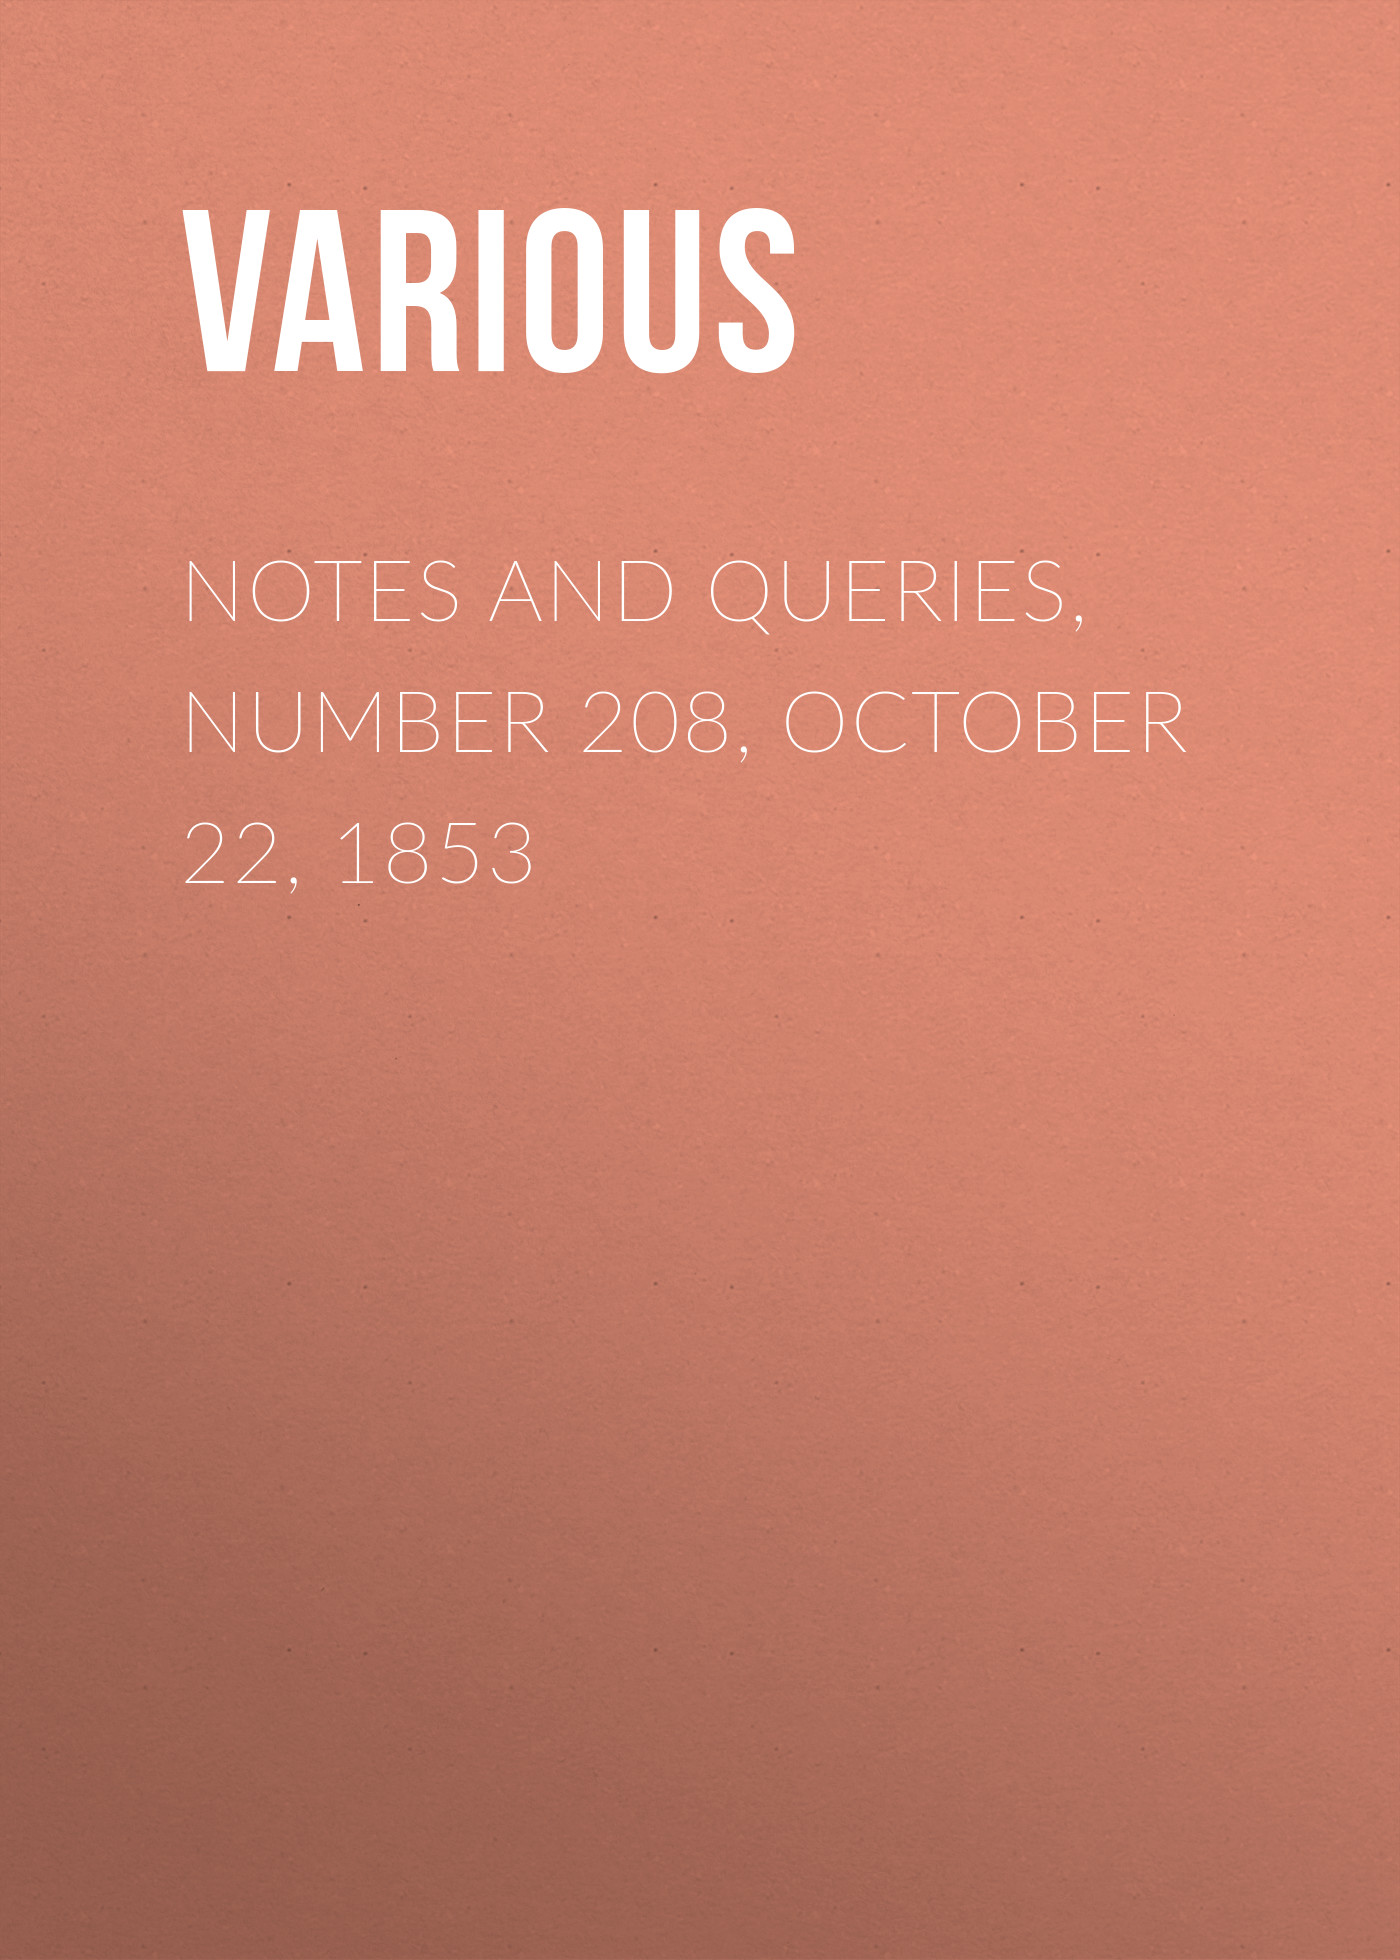 Various Notes and Queries, Number 208, October 22, 1853 october